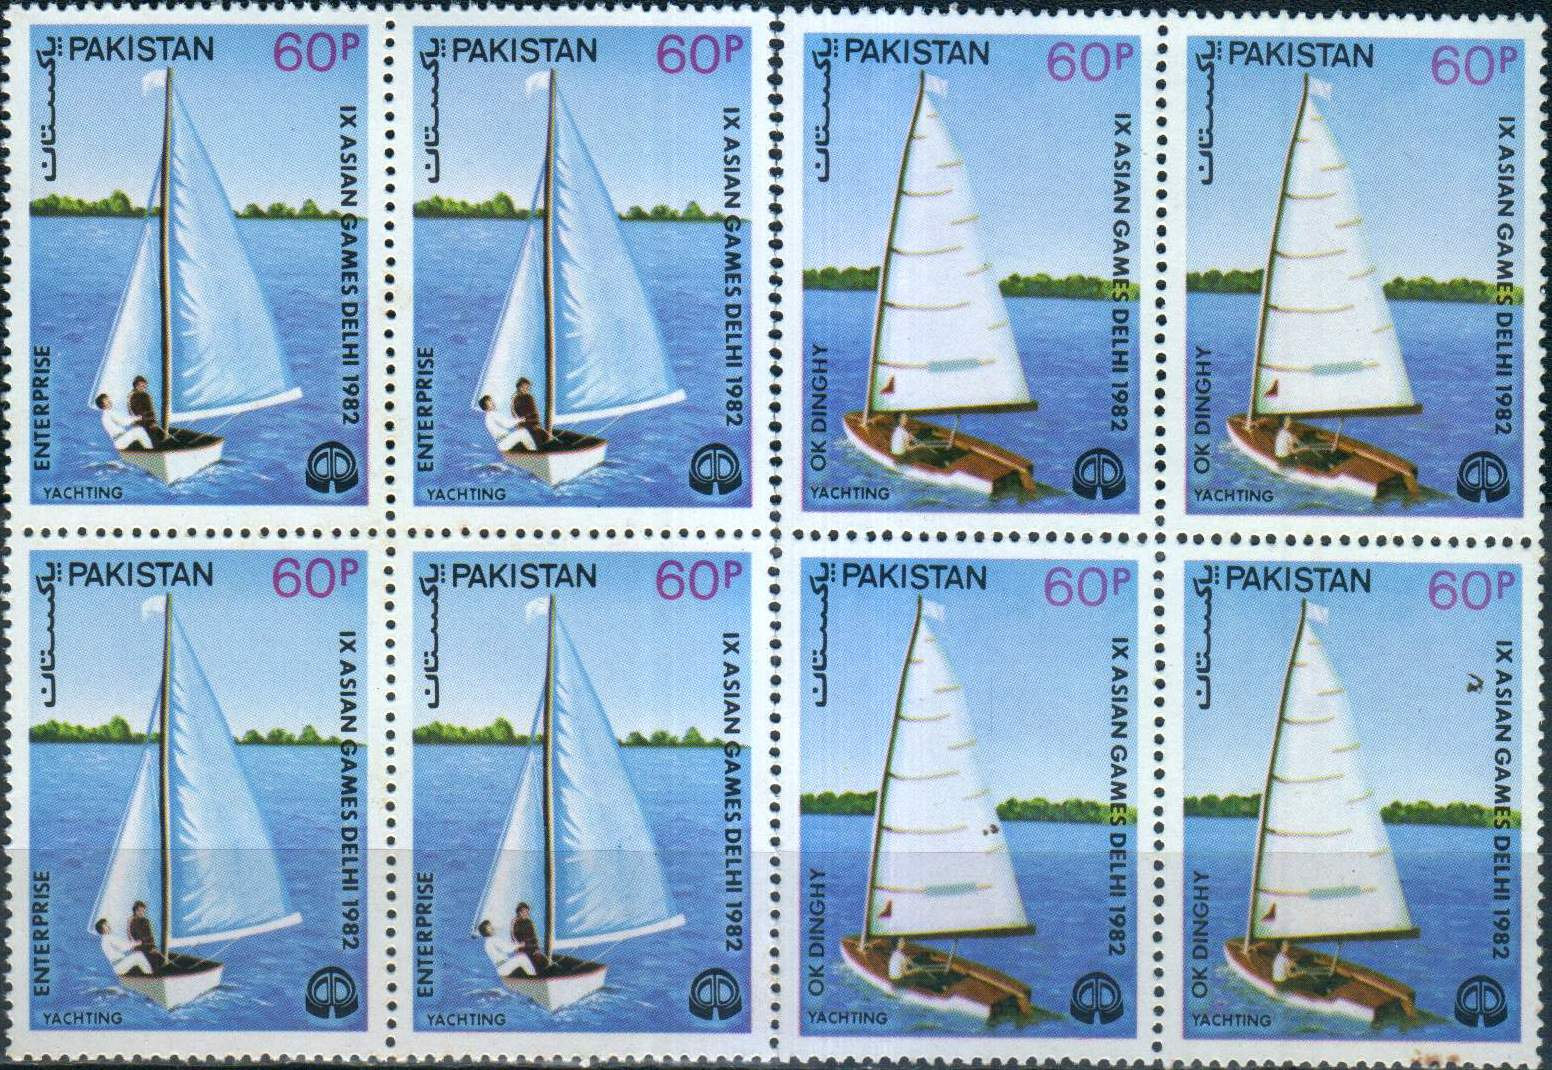 Pakistan Stamps 1983 Asian Games Yachting Champions